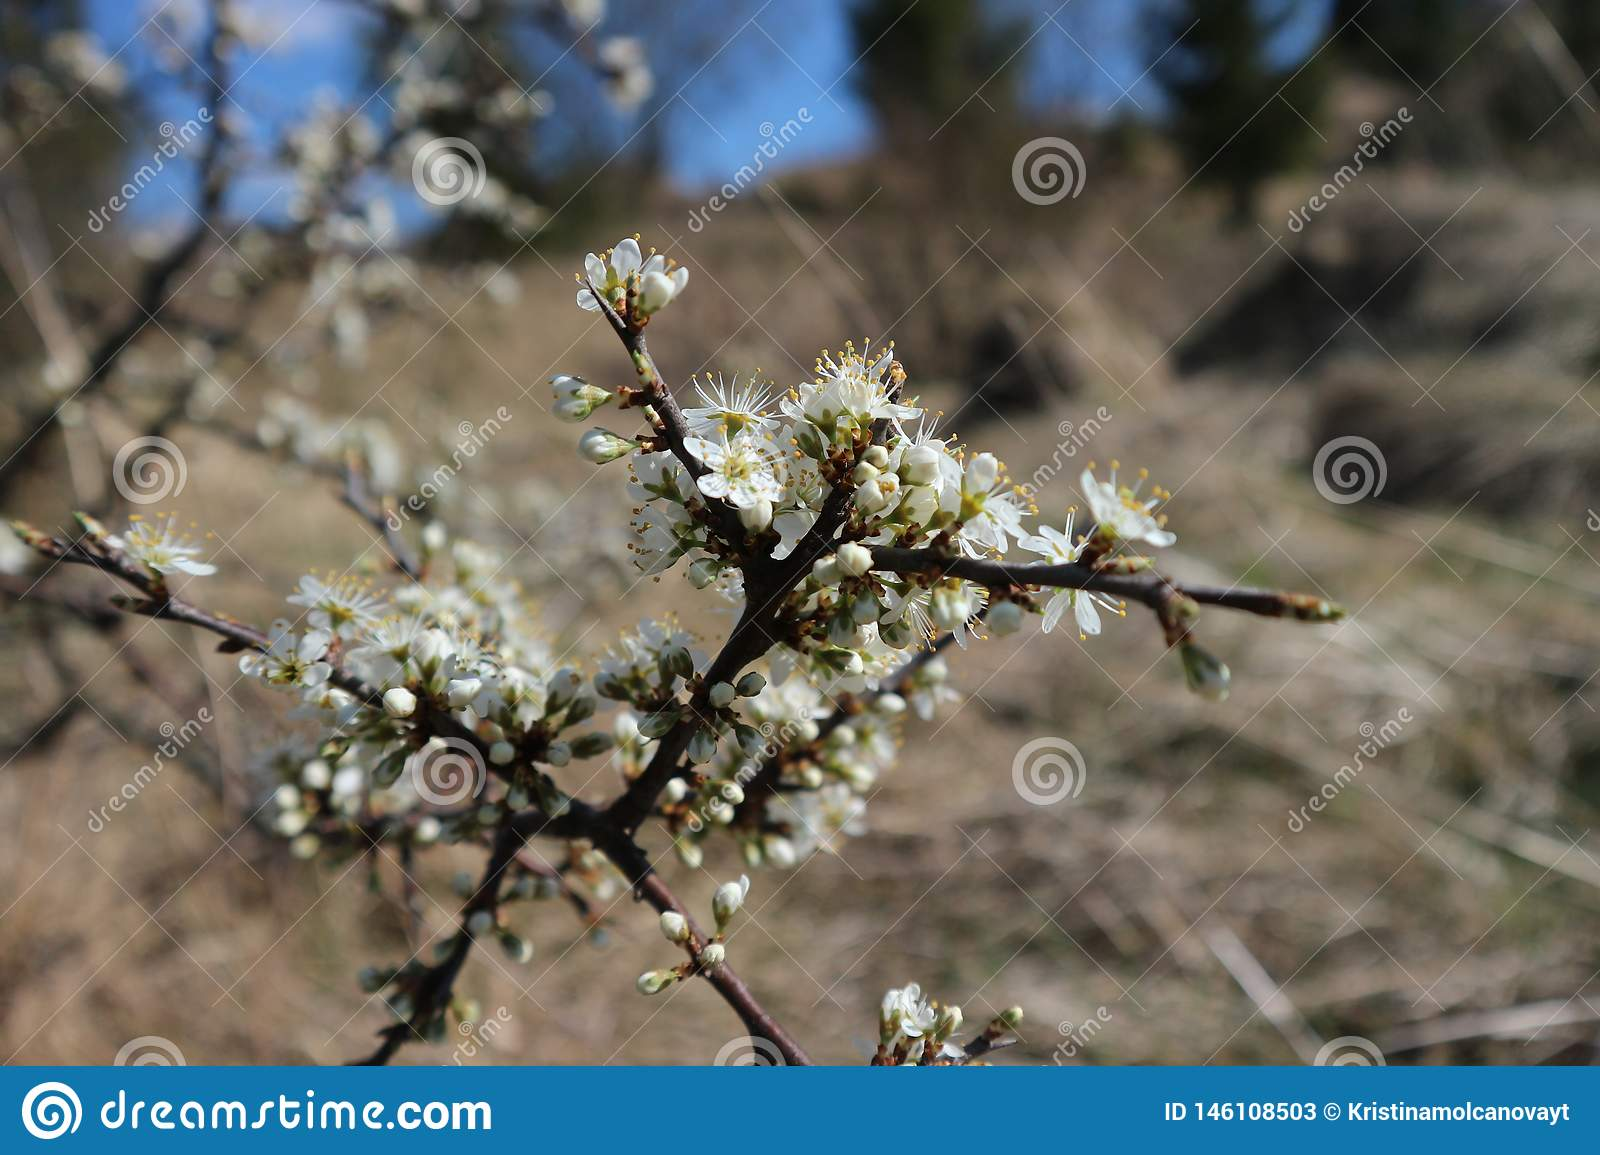 Flowers on the tree on the land.